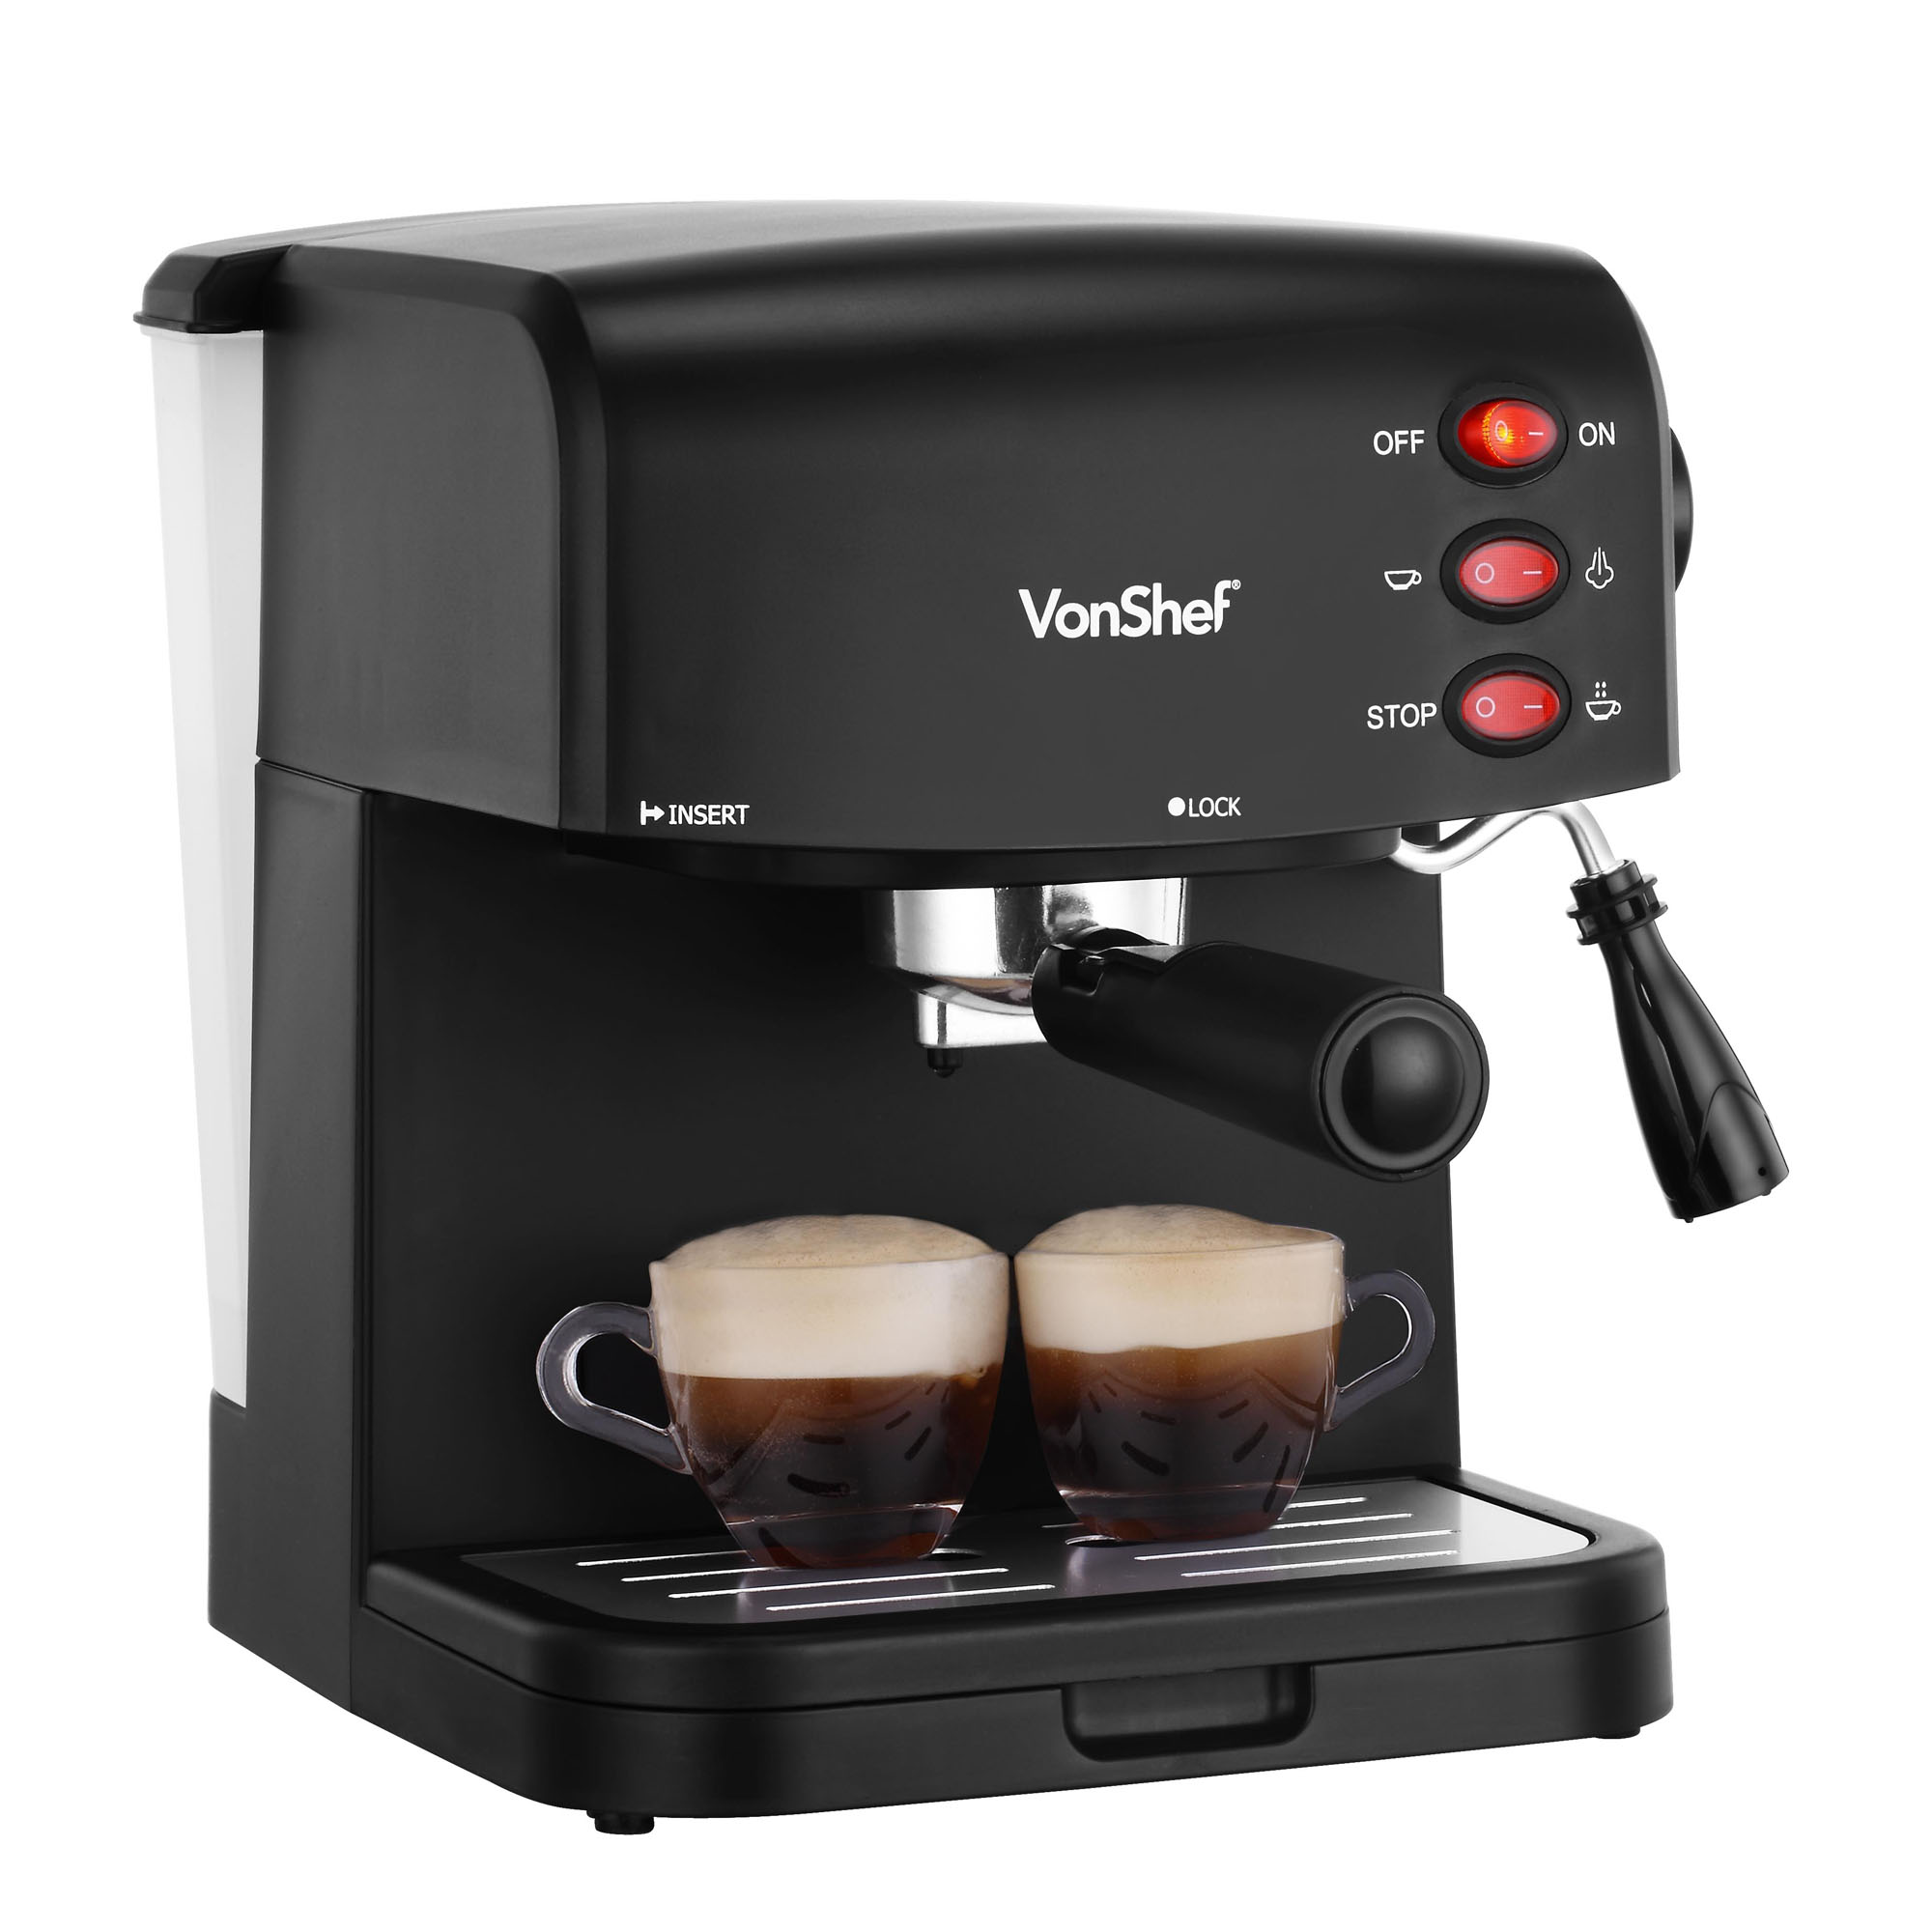 Coffee Maker Latte Reviews : VonShef 15 Bar Espresso Machine Cappuccino Latte Coffee Maker 850W Black eBay